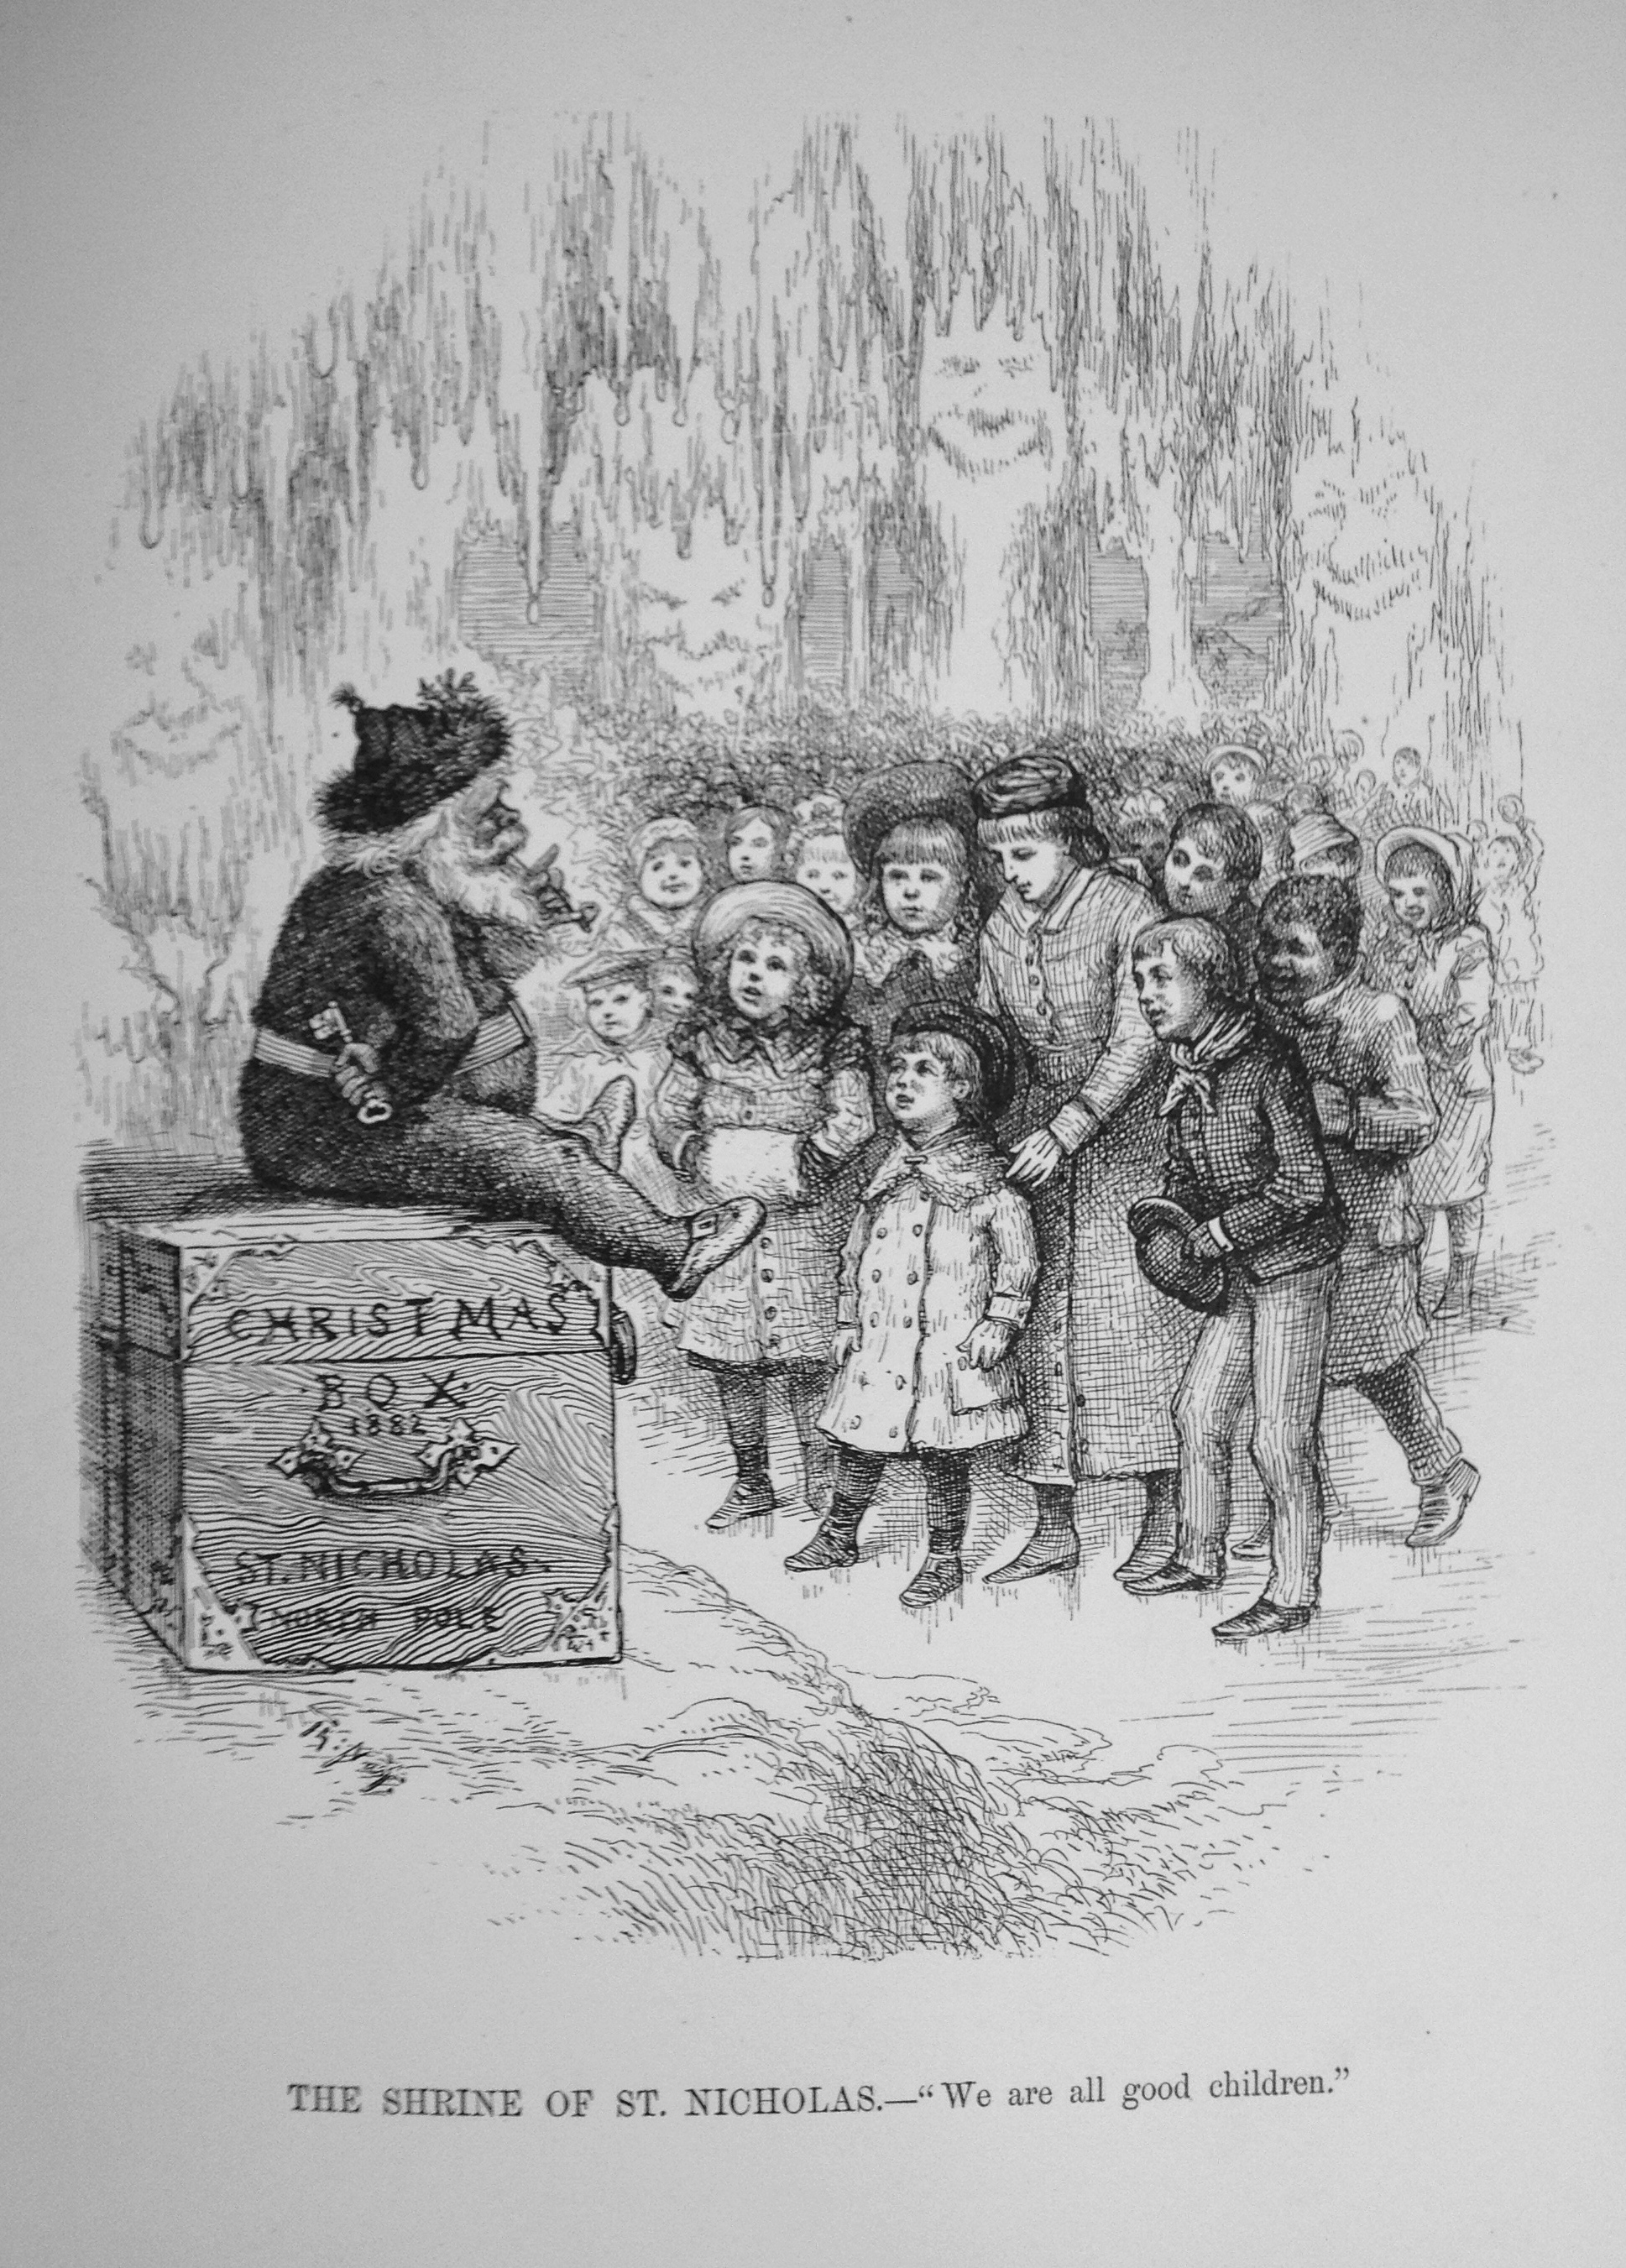 An early illustration of Santa Claus as we now picture him on display in Lines in the Ice. Thomas Nast's Christmas Drawings. London (New York), 1890. Photograph courtesy of the British Library